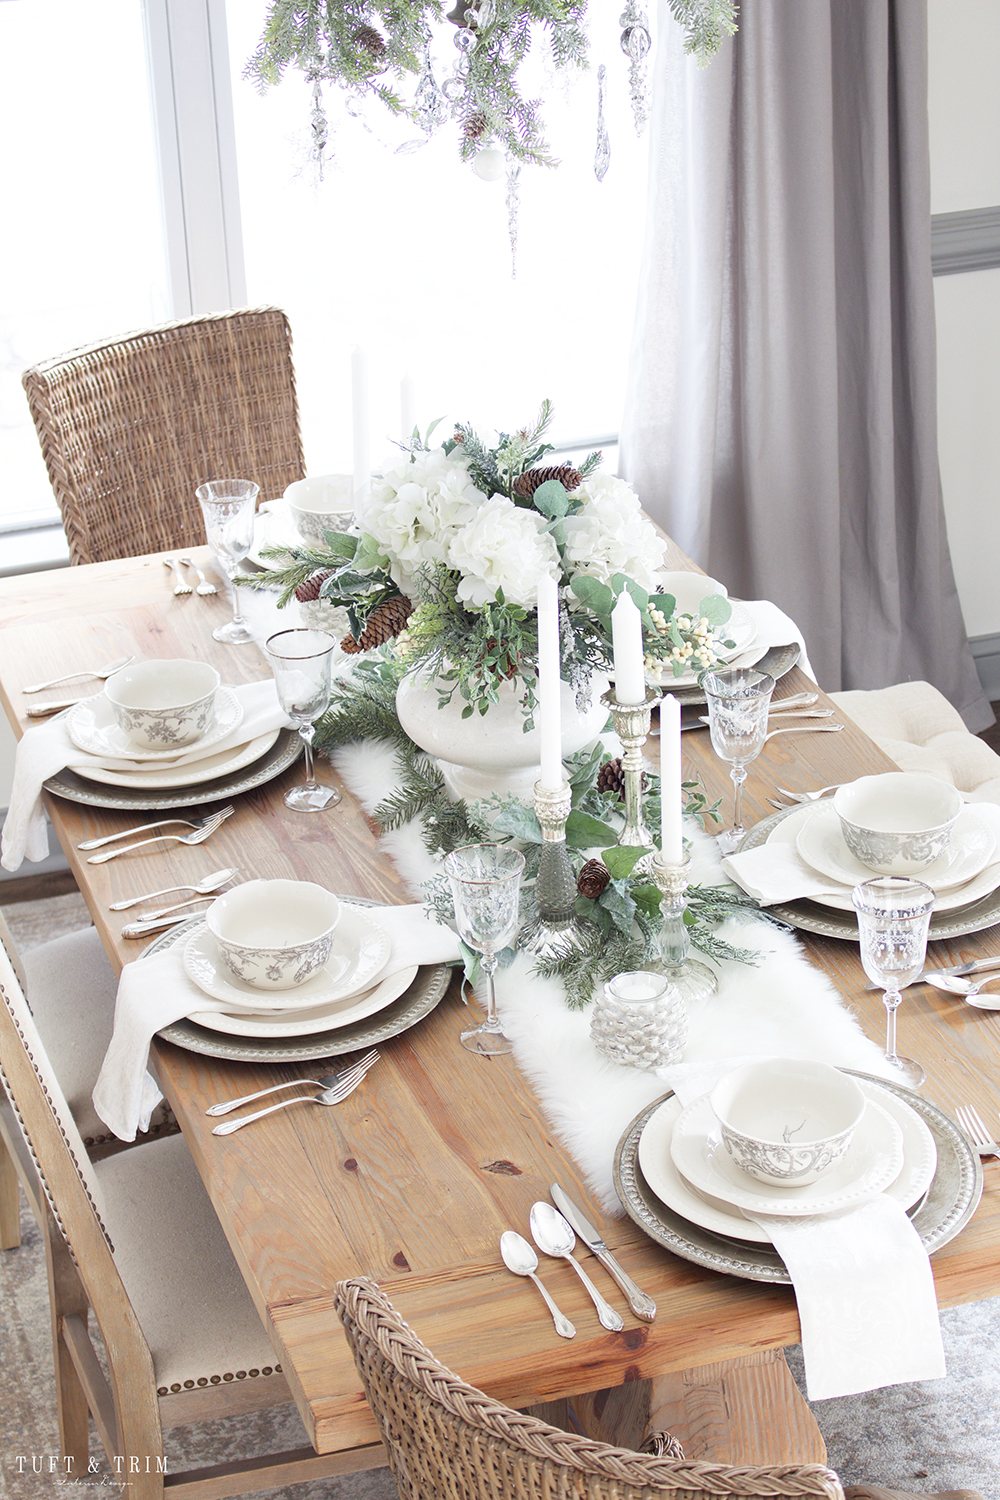 Holiday Tour Part 2: An Elegant White Christmas Tablescape - Tuft & Trim